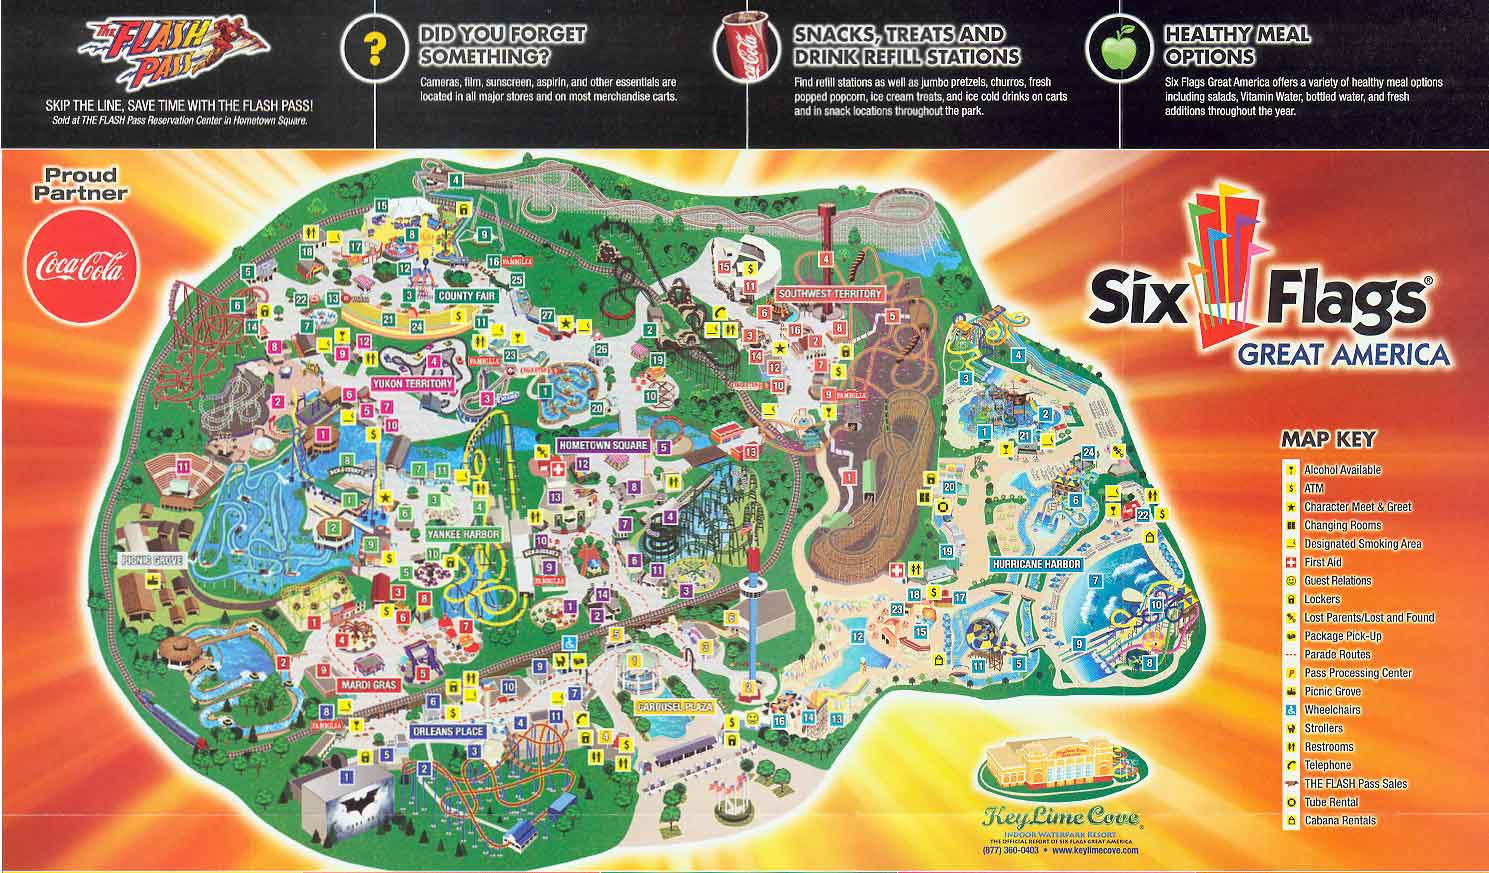 Six Flags Great America Map 2011maphtml Six Flags Locations Map Six Flags Locations Map